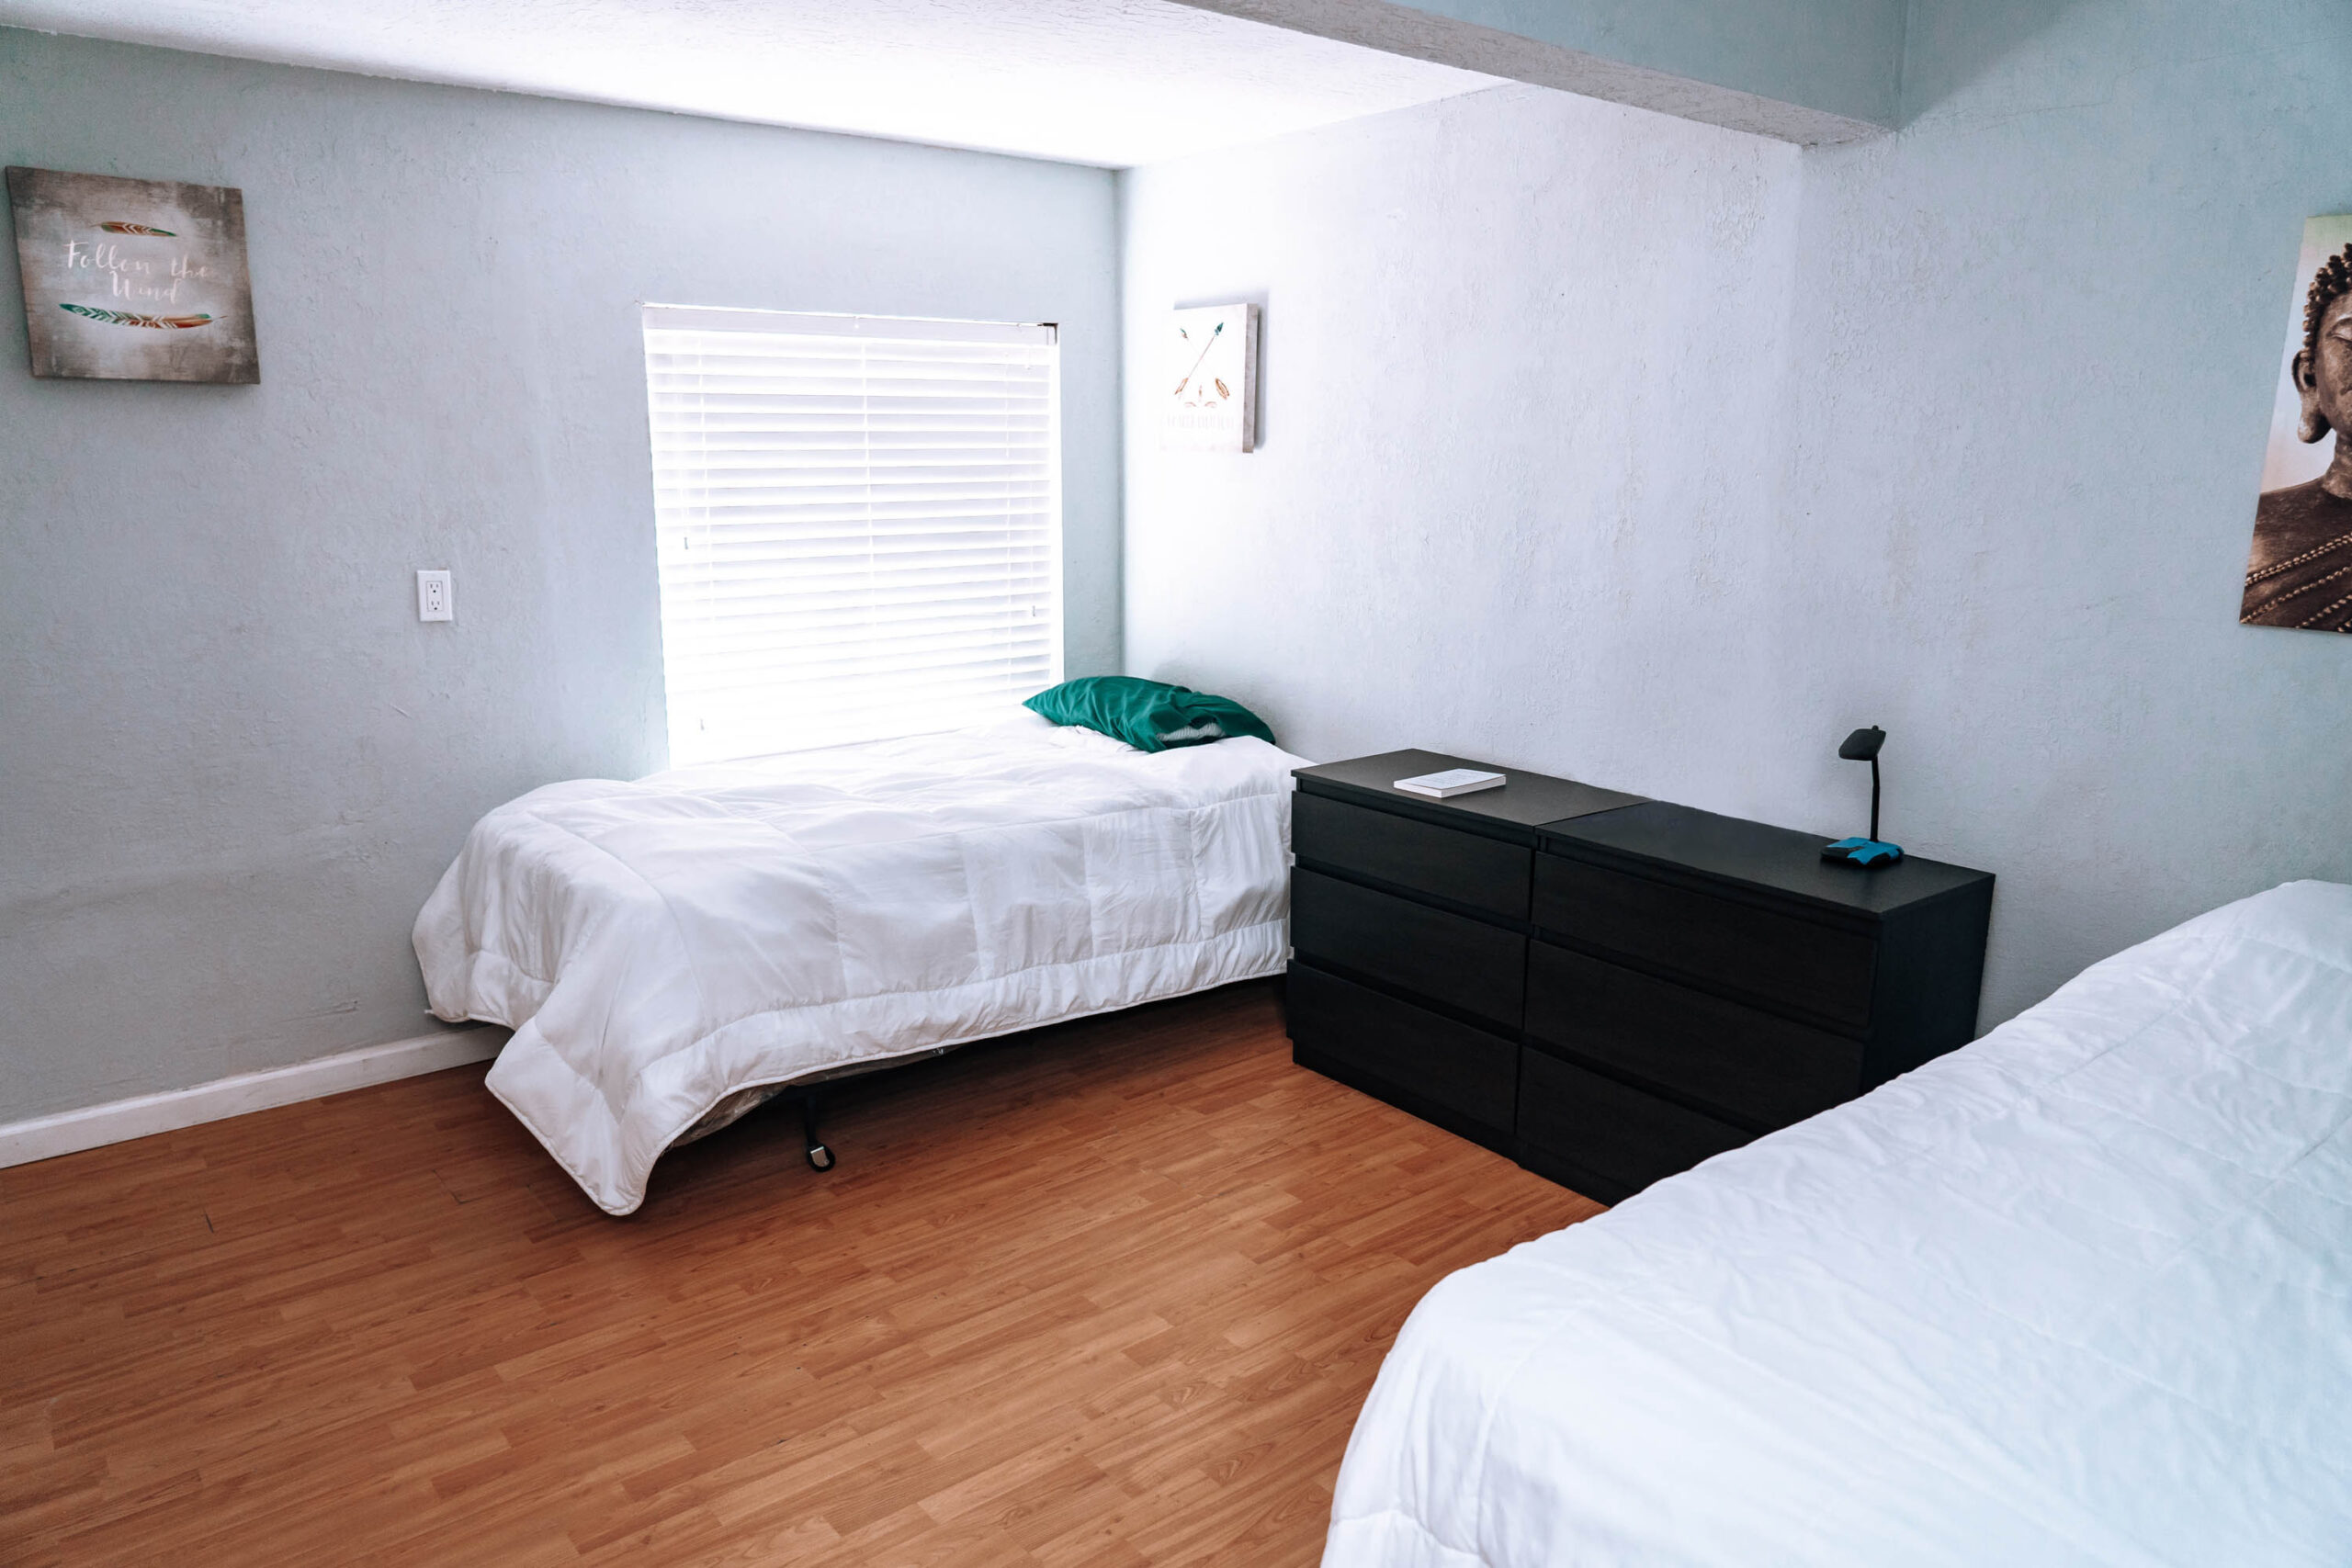 Residential Treatment Living Facility Bedroom